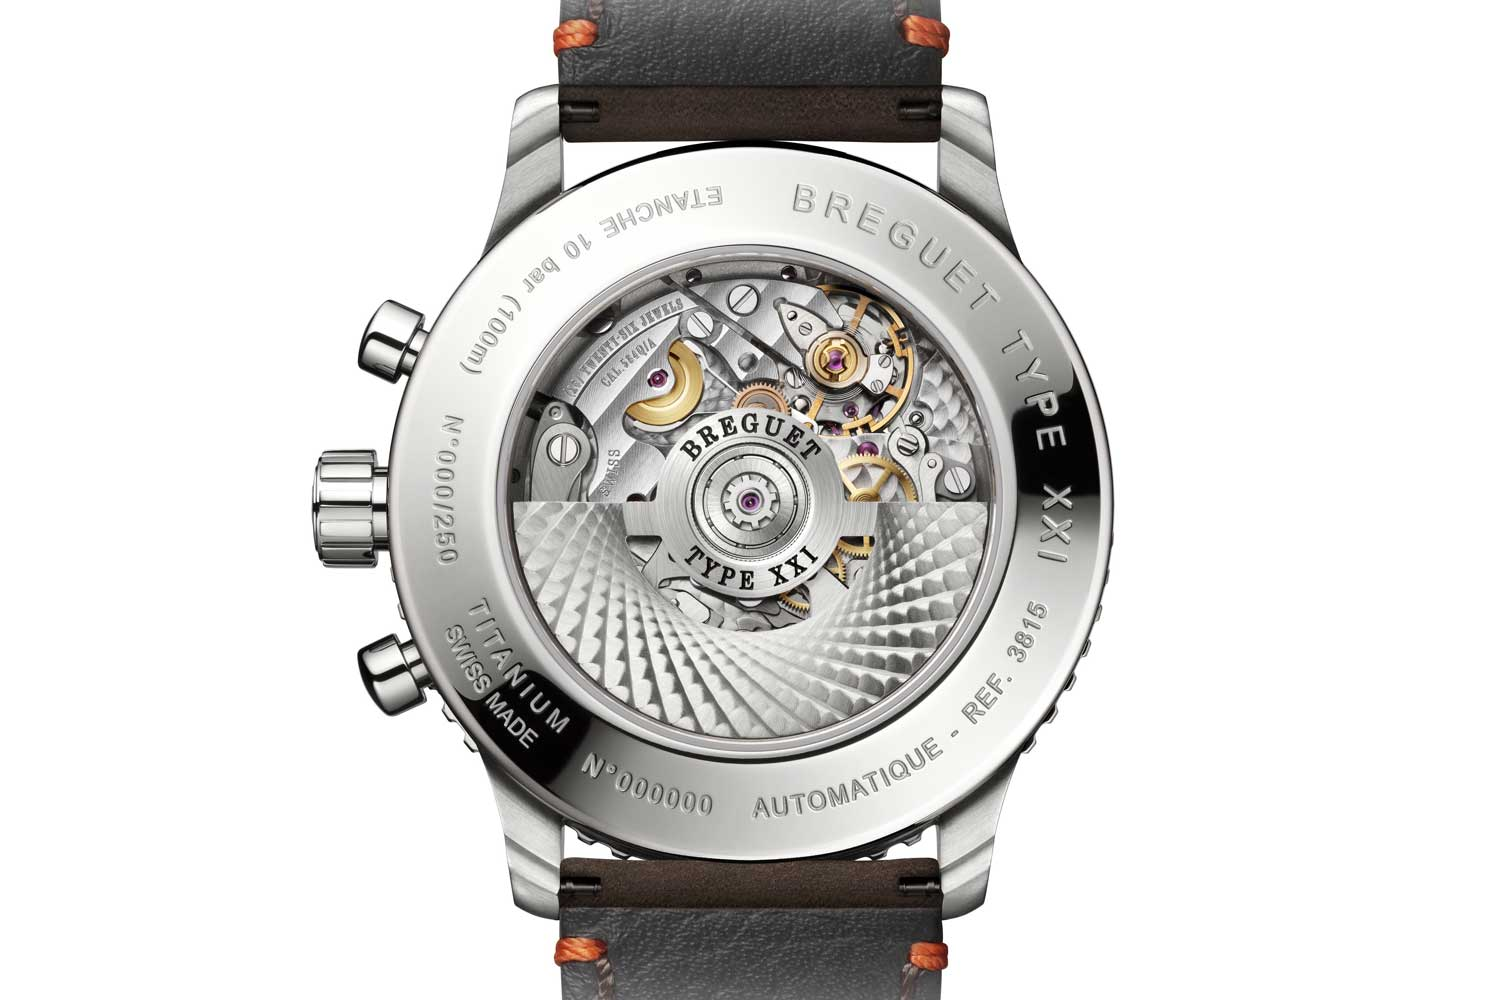 Breguet's cal. 584Q/2 features a flyback function for the chronograph's seconds hand and a silicon escapement.